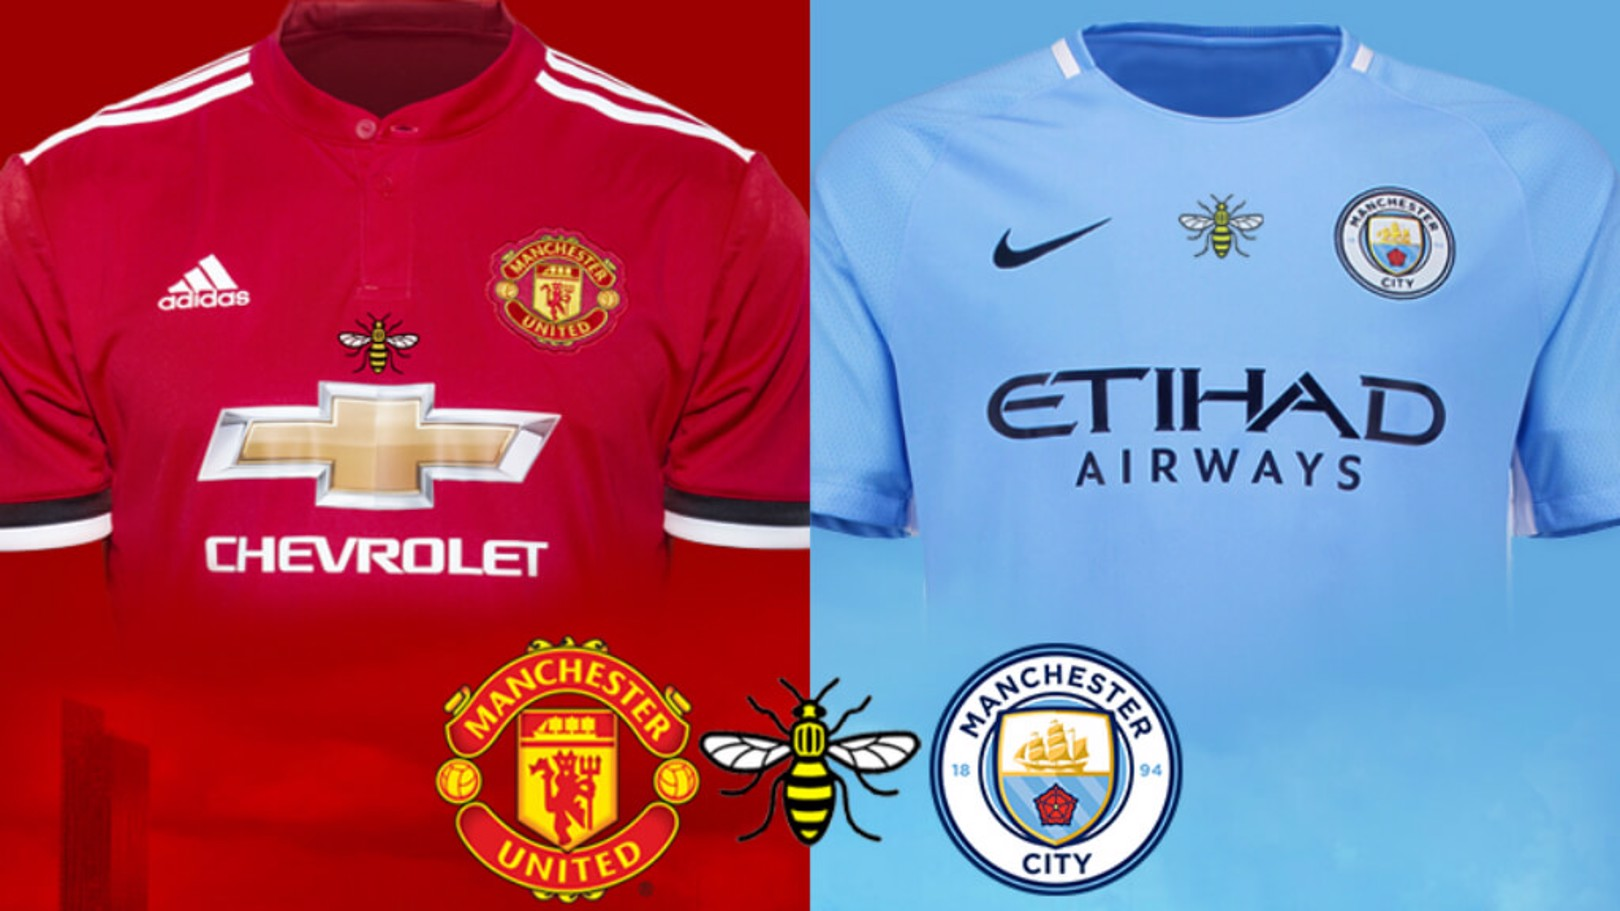 A CITY UNITED: The Manchester bee will feature on both clubs' shirts in Houston.